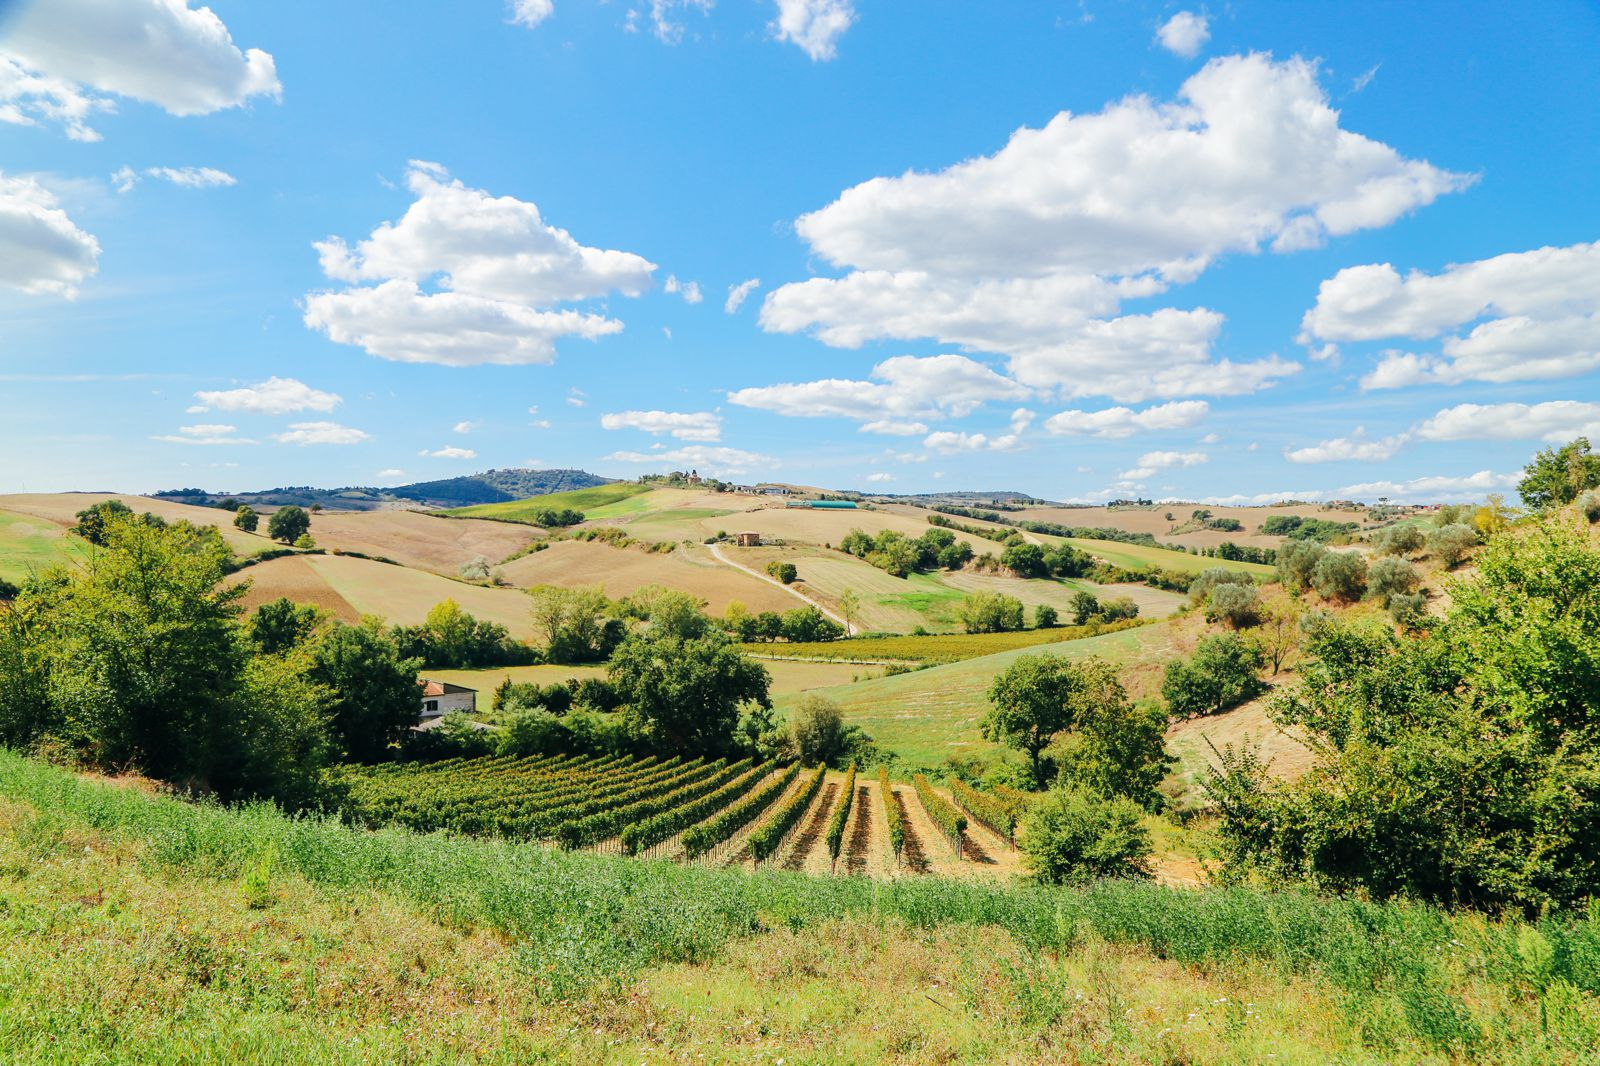 The Tuscan Countryside (6)